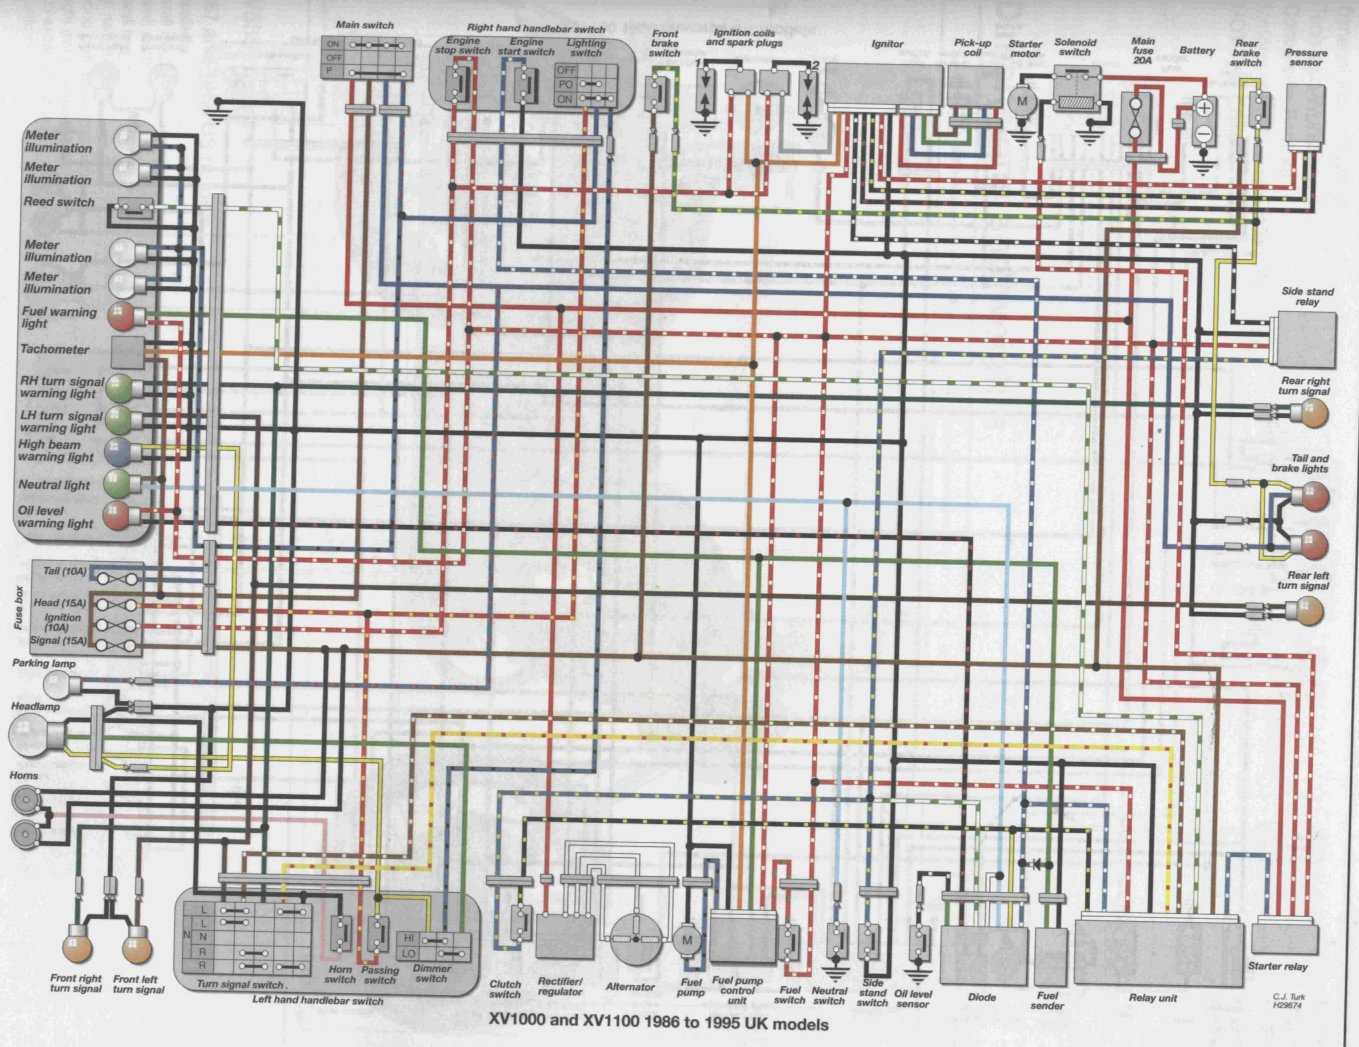 yamaha v star 1300 wiring diagram basic wiring diagram u2022 rh rnetcomputer co Ford Focus Fuse Box Diagram Ford Fuse Box Diagram